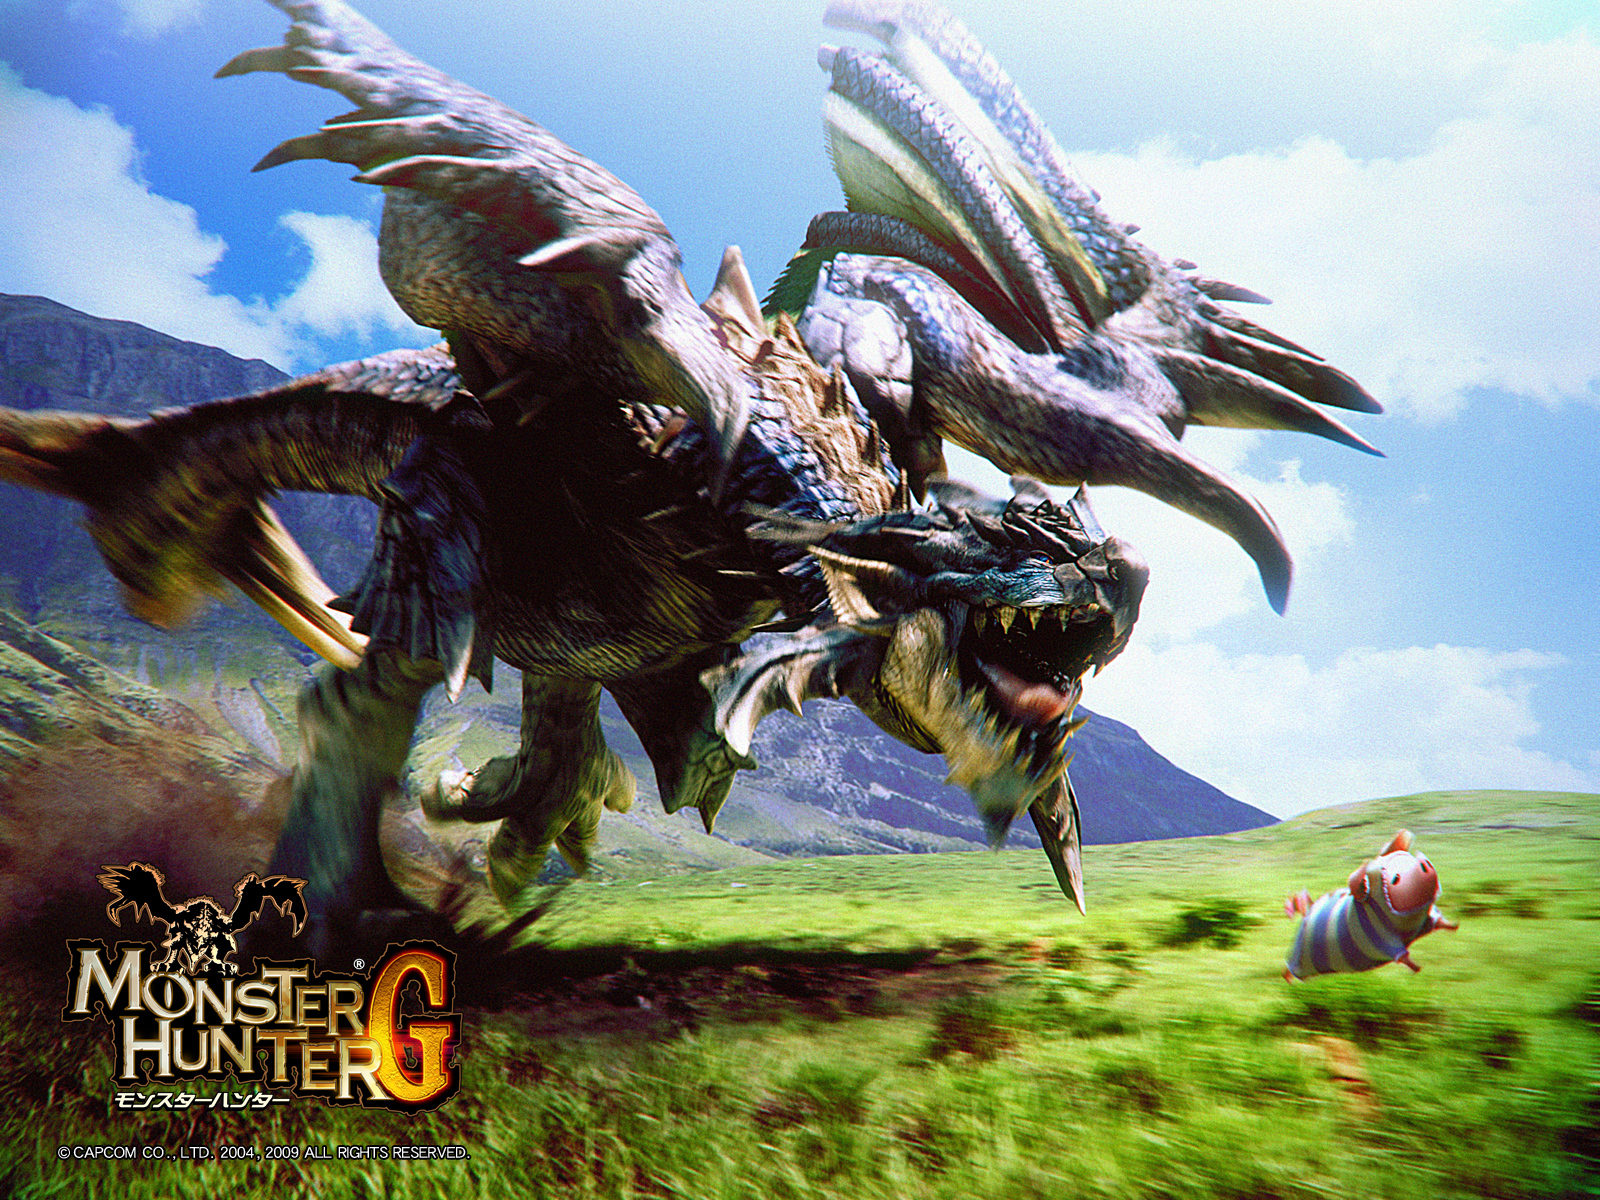 wallpapers monster hunter wallpapers monster hunter wallpapers monster 1600x1200